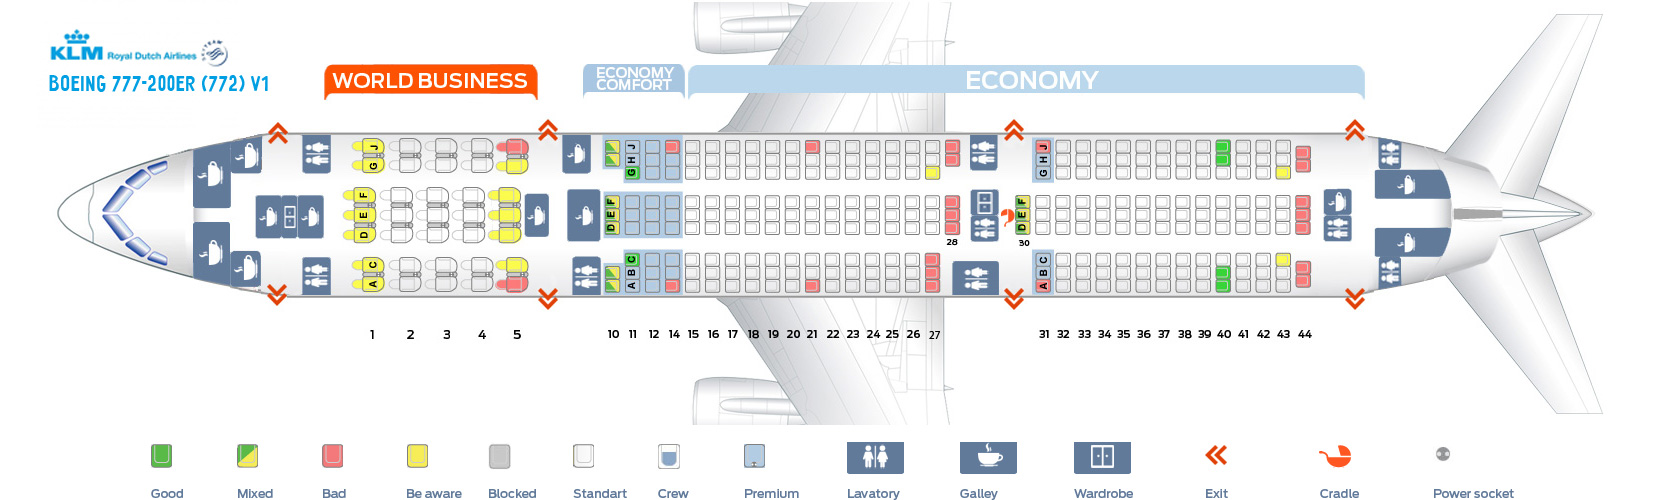 Seat Map Boeing 777-200ER V1 KLM Airlines